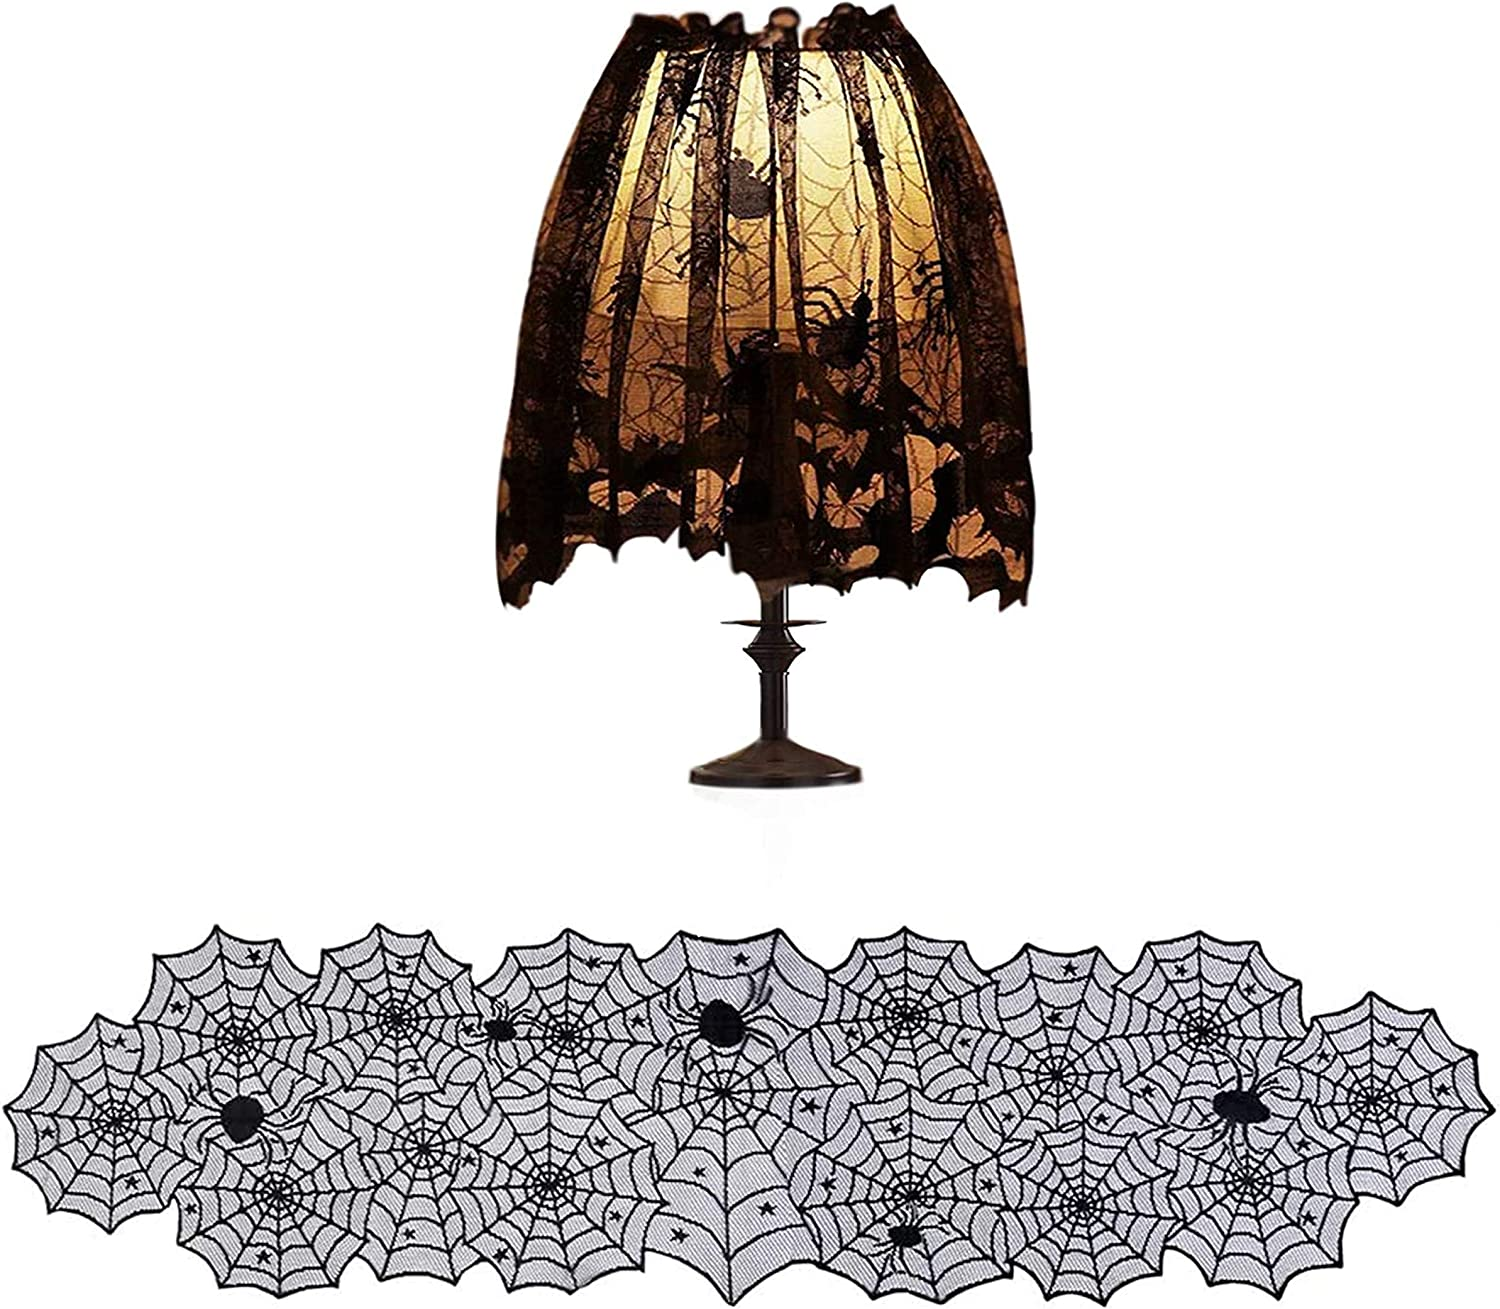 DECORJ 2 Pack Special sale item Halloween Decoration Party Festive T Lace Supplies 4 years warranty